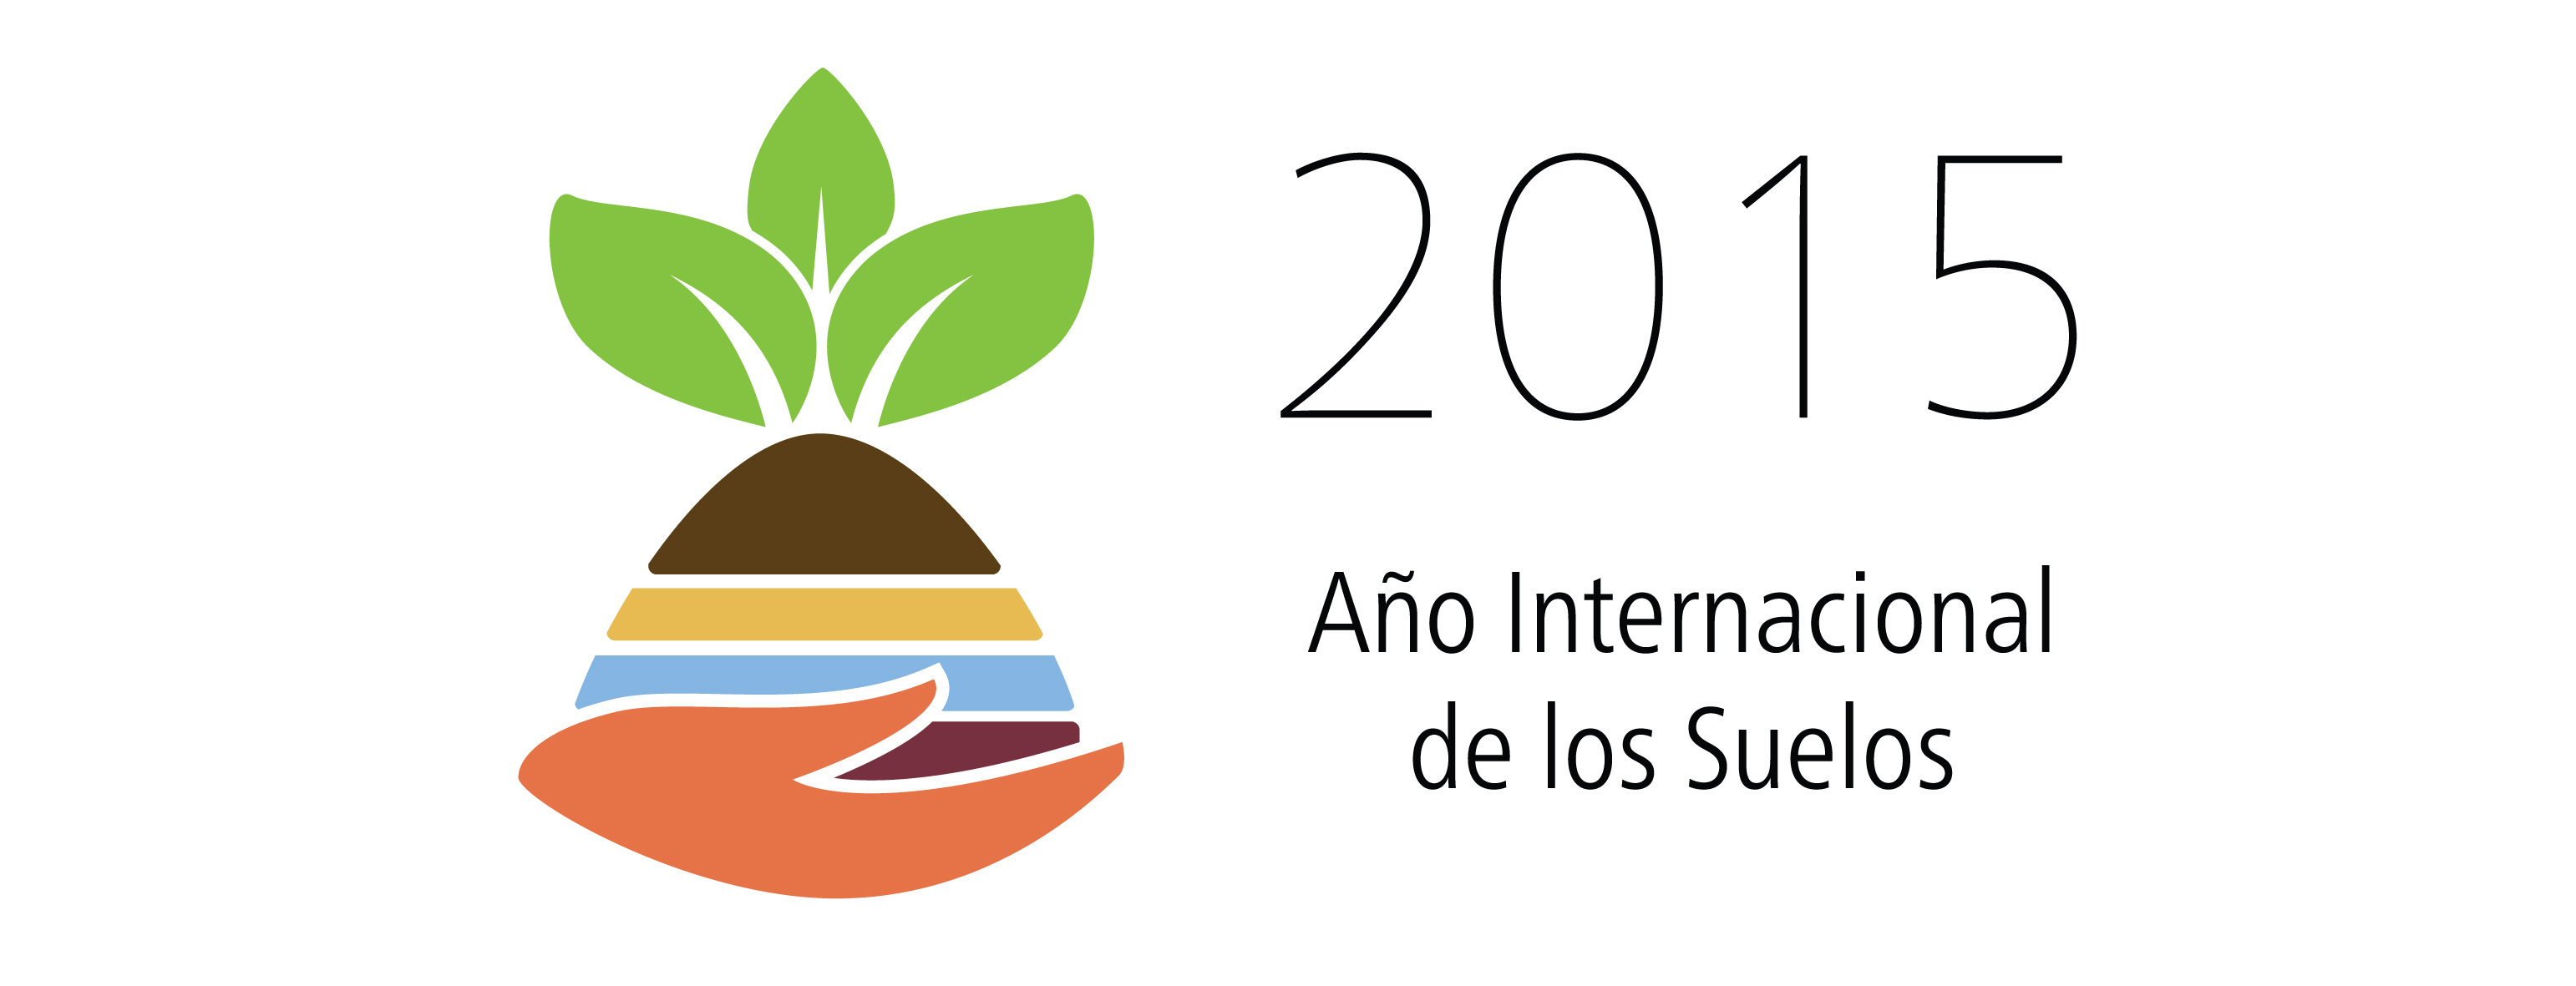 https://i2.wp.com/www.fao.org/fileadmin/user_upload/soils-2015/images/ES/LOGO_IYS_es_Print.jpg